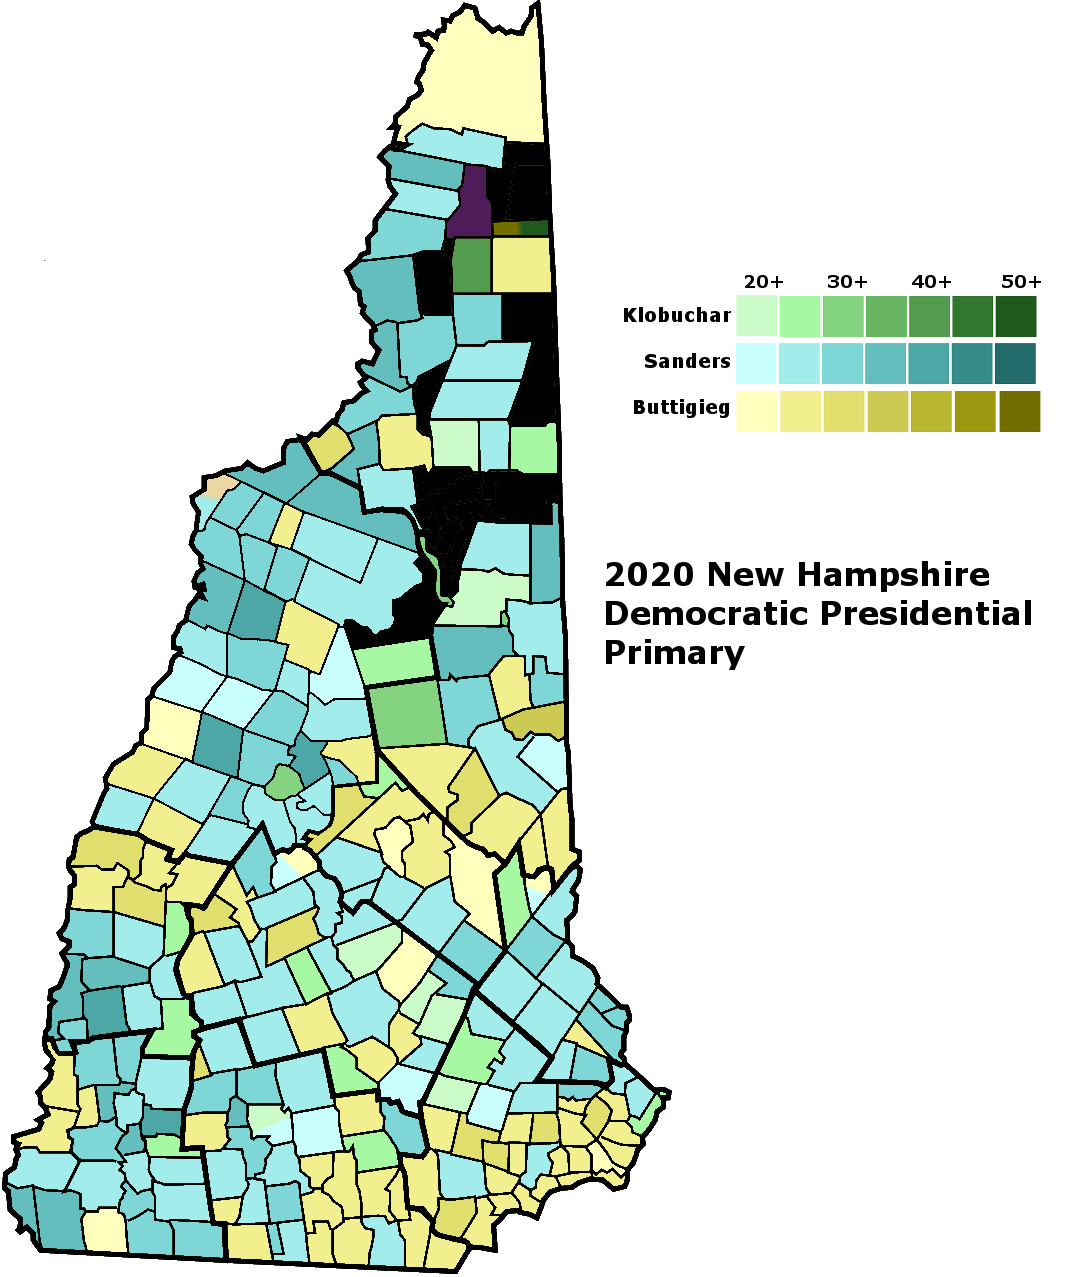 NH 2020 Democratic Presidential Primary.png